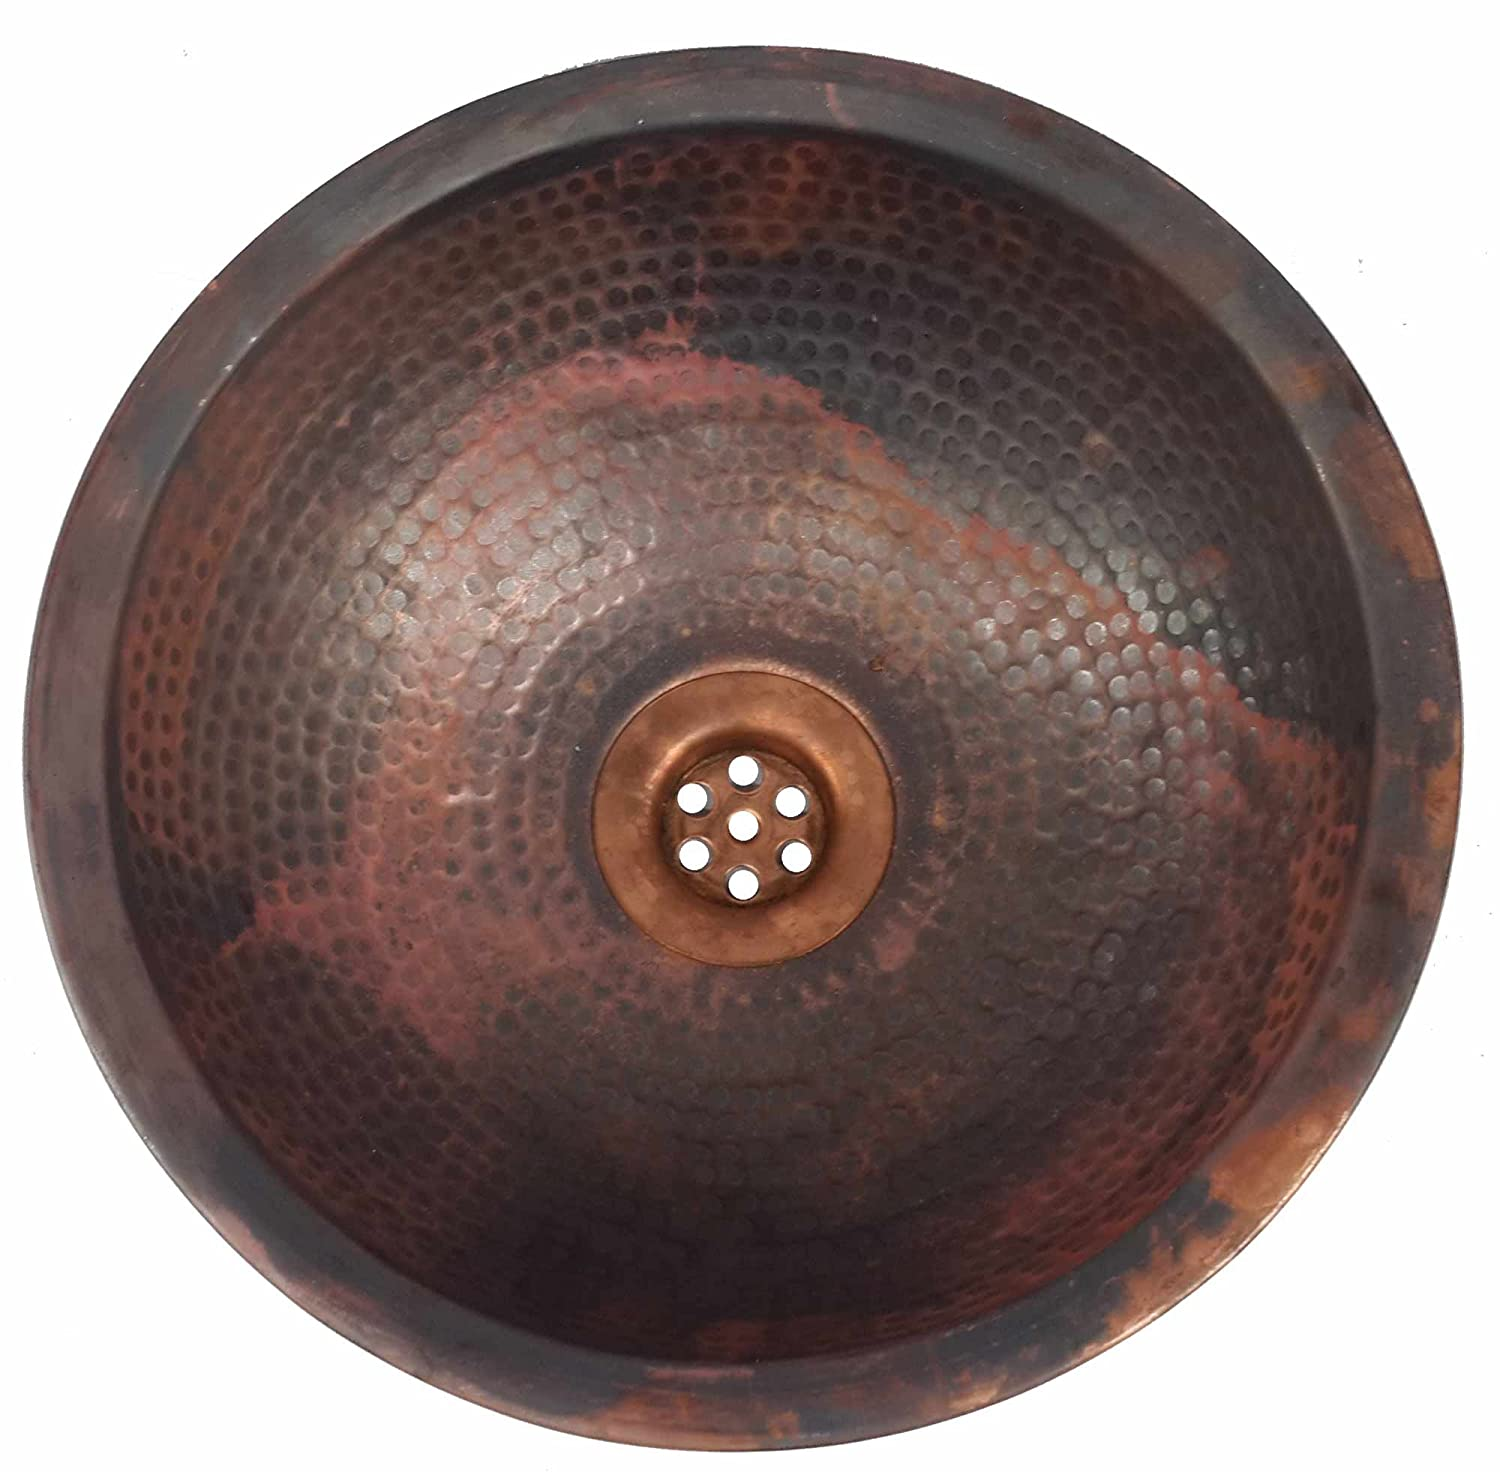 Egypt gift shops Dome Fire Patina VERY SMALL Narrow Places Vanity Innovative Copper Bath Sink House Remodel